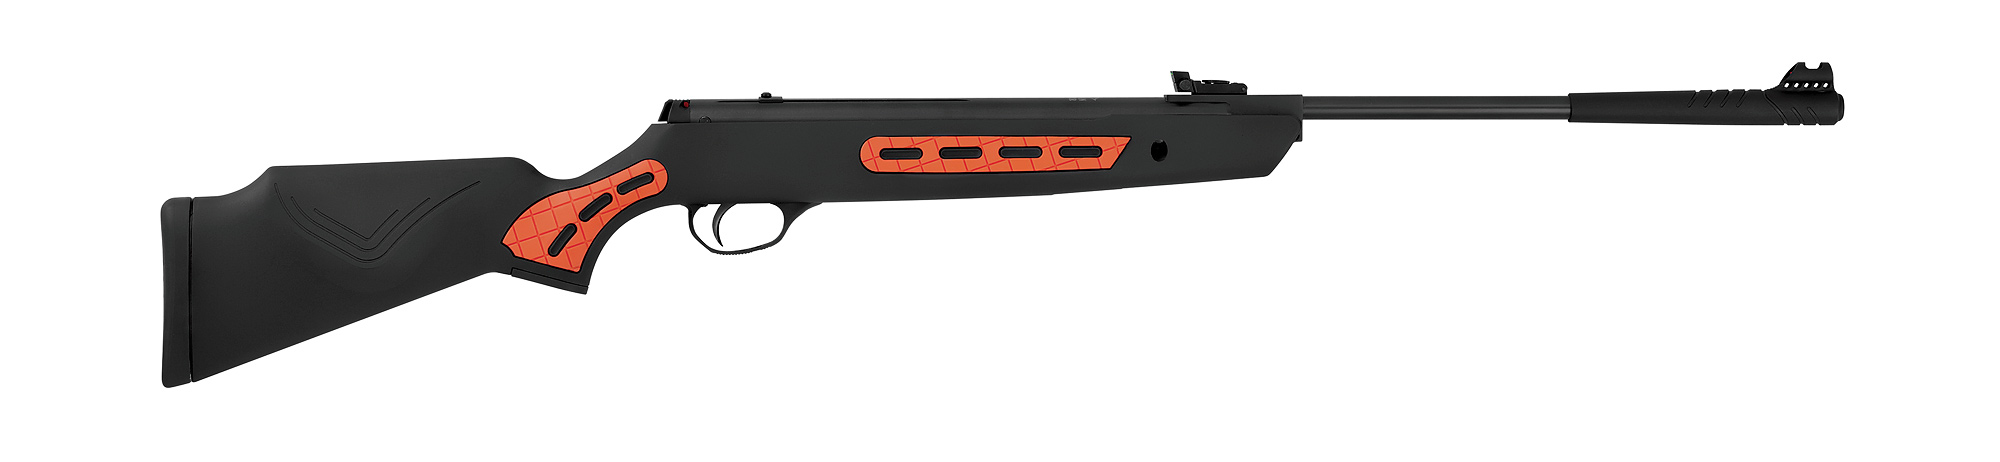 Hatsan Striker S 635mm